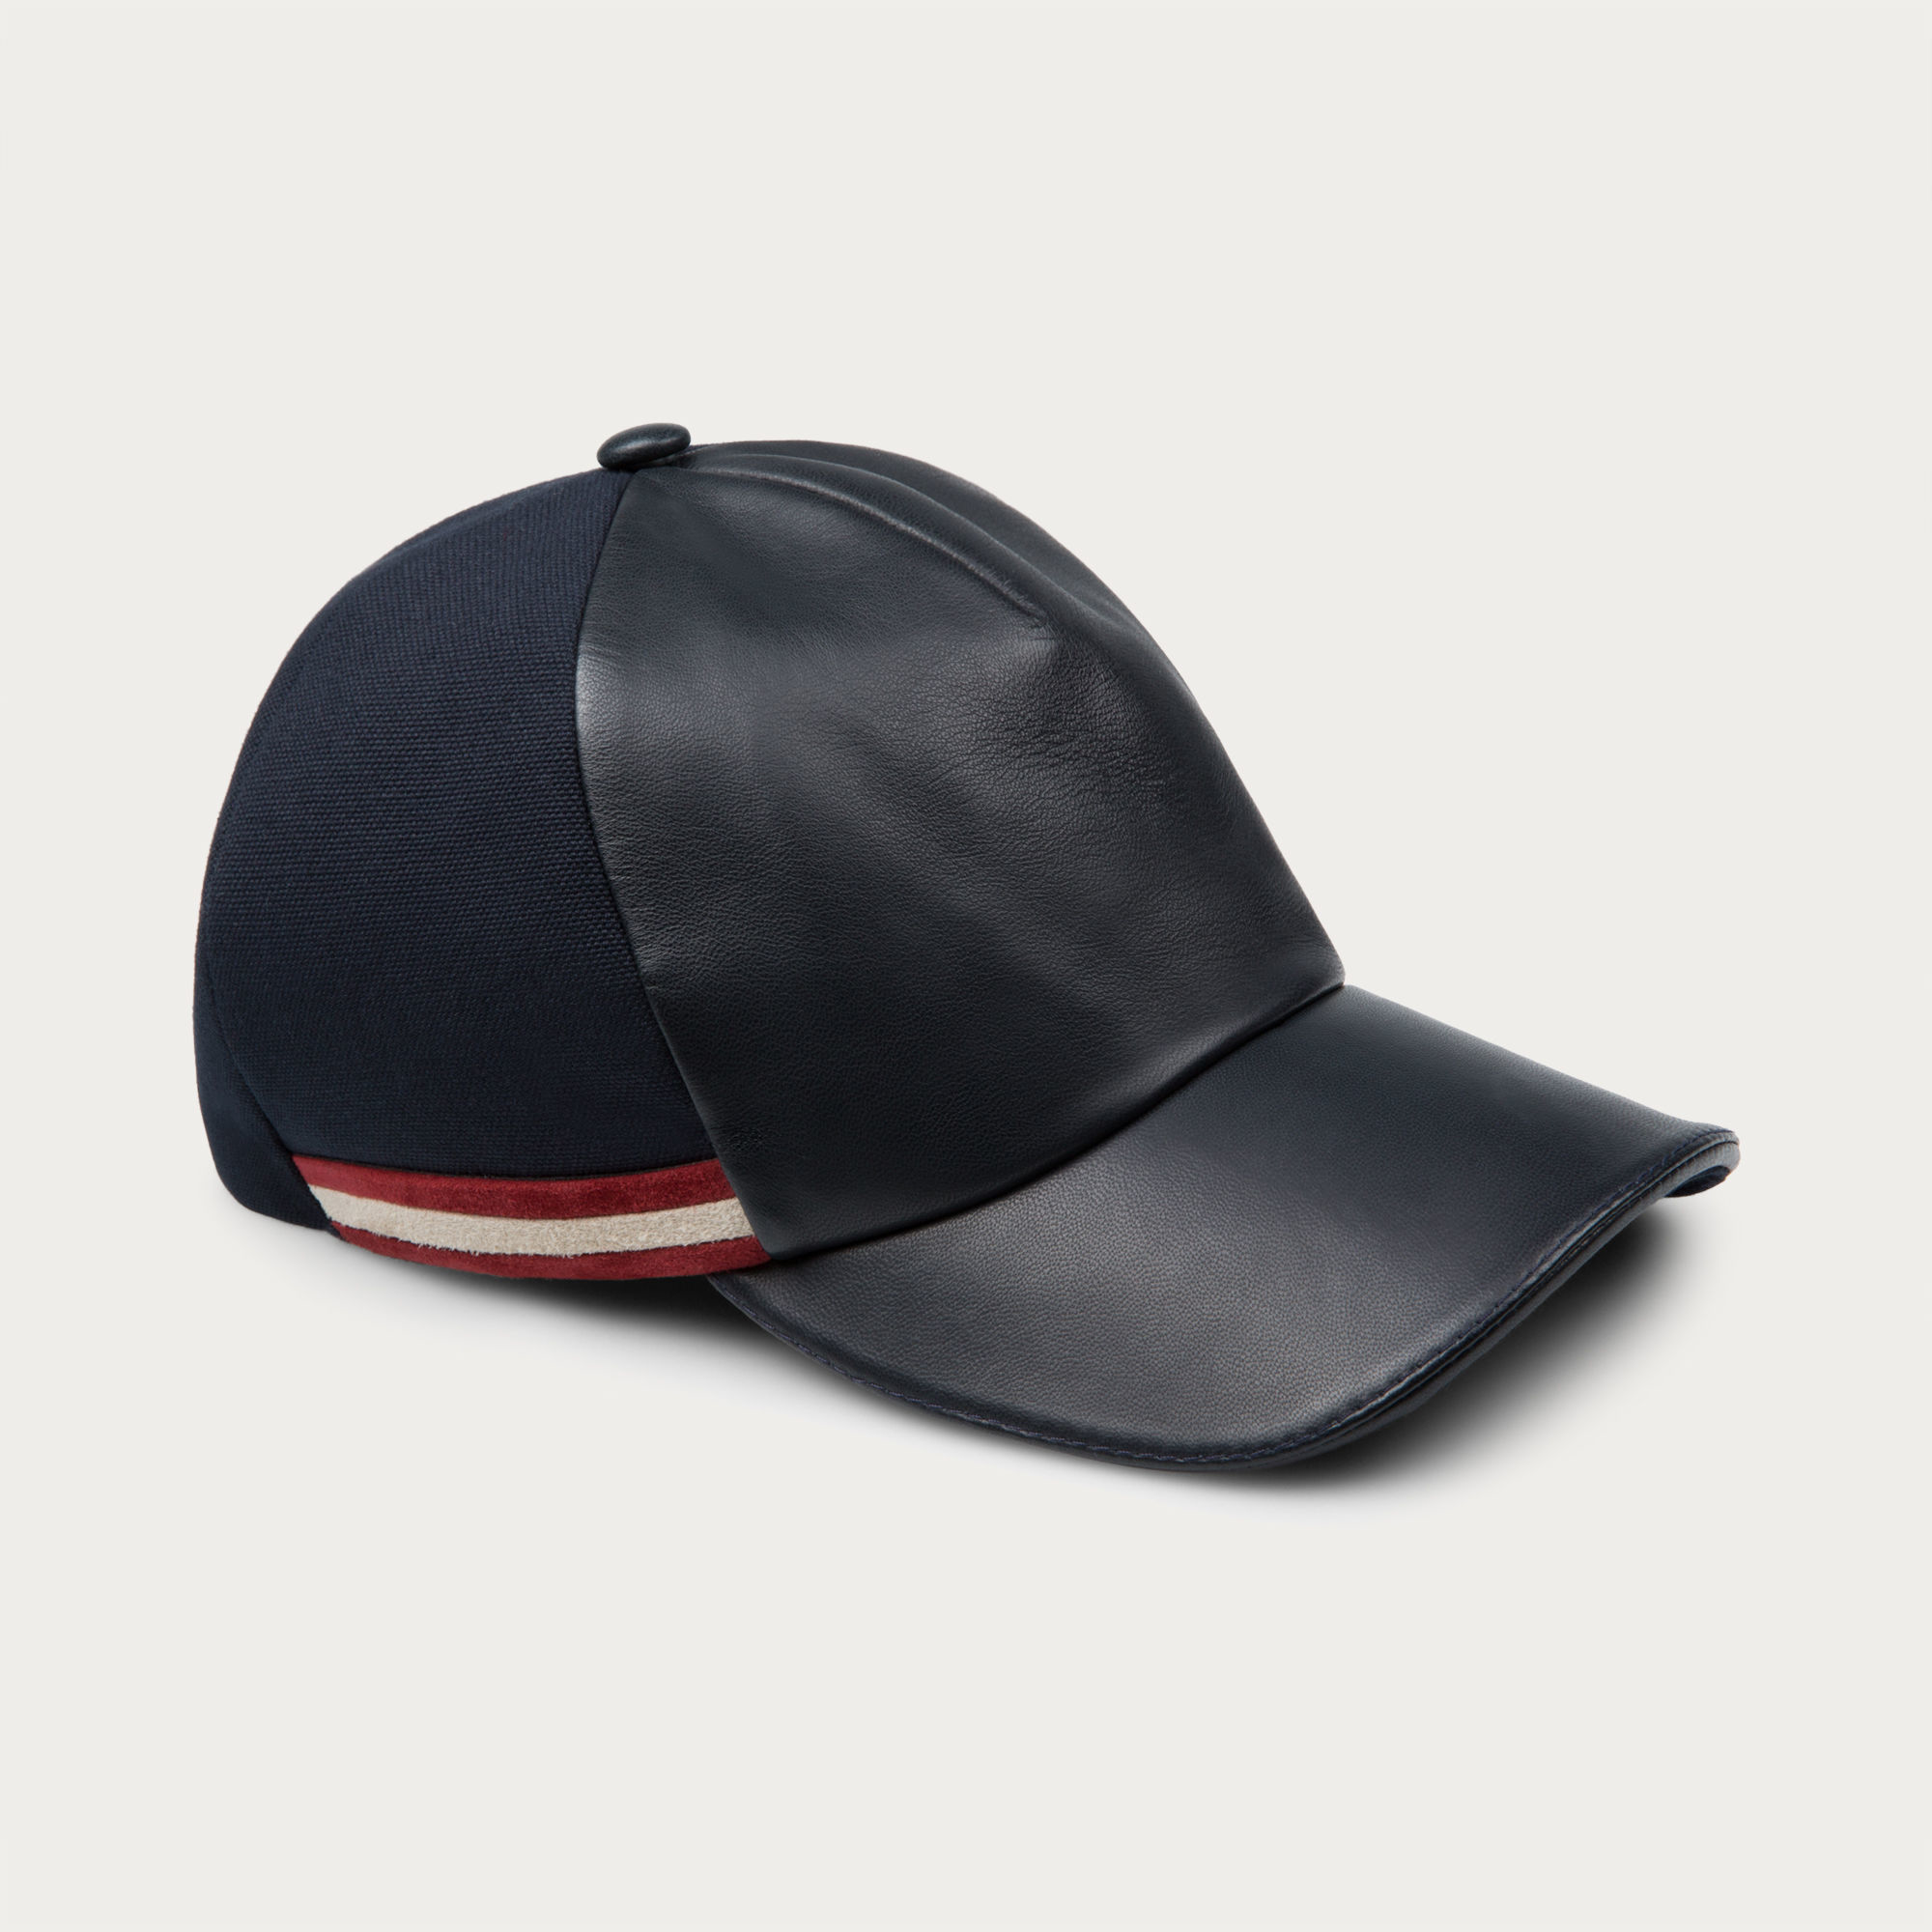 bally leather baseball cap s leather cap in navy